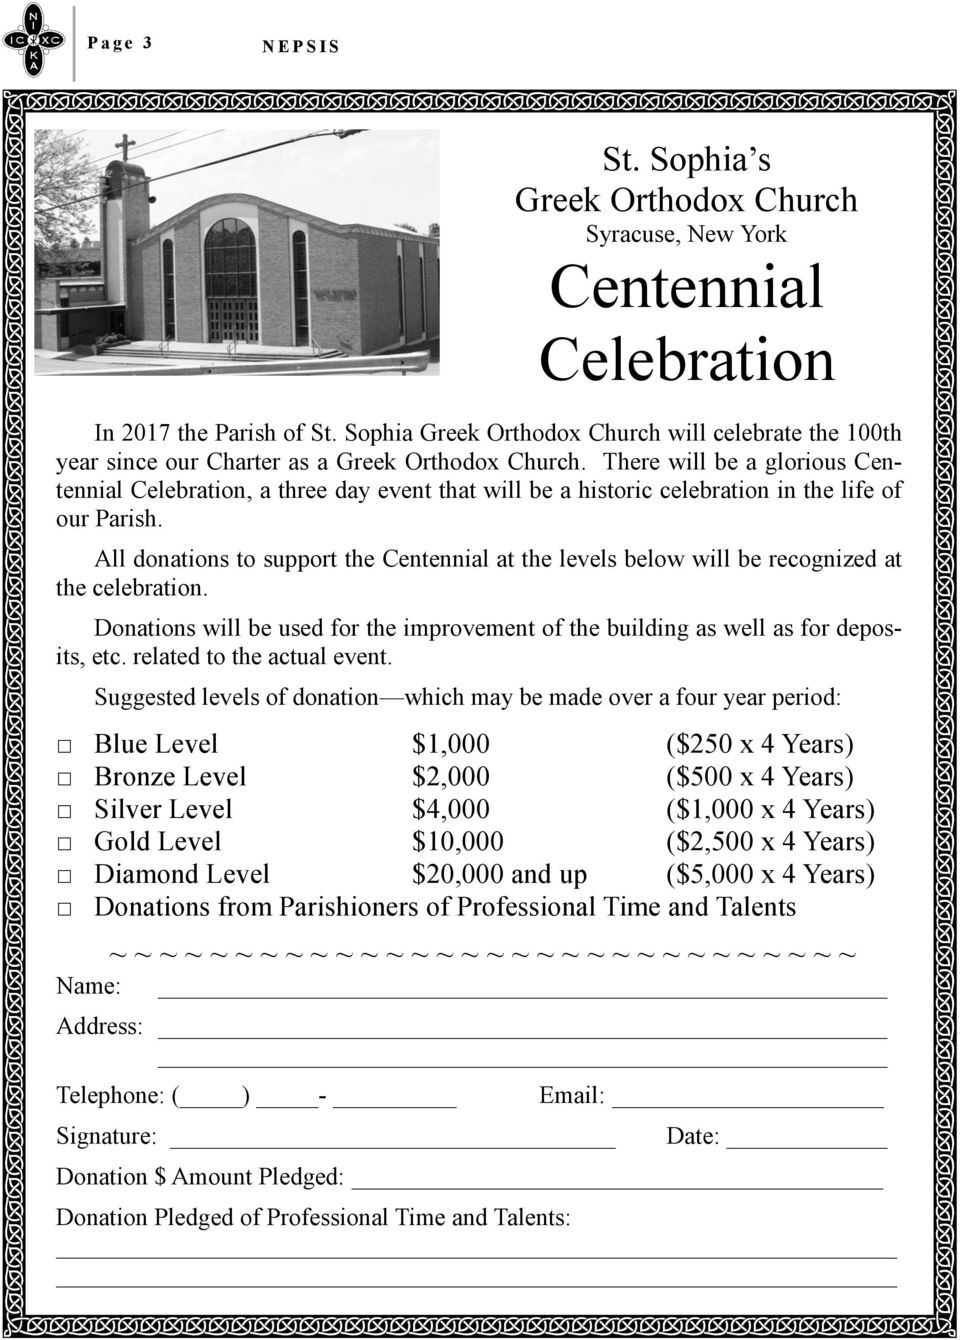 There will be a glorious Centennial Celebration, a three day event that will be a historic celebration in the life of our Parish.